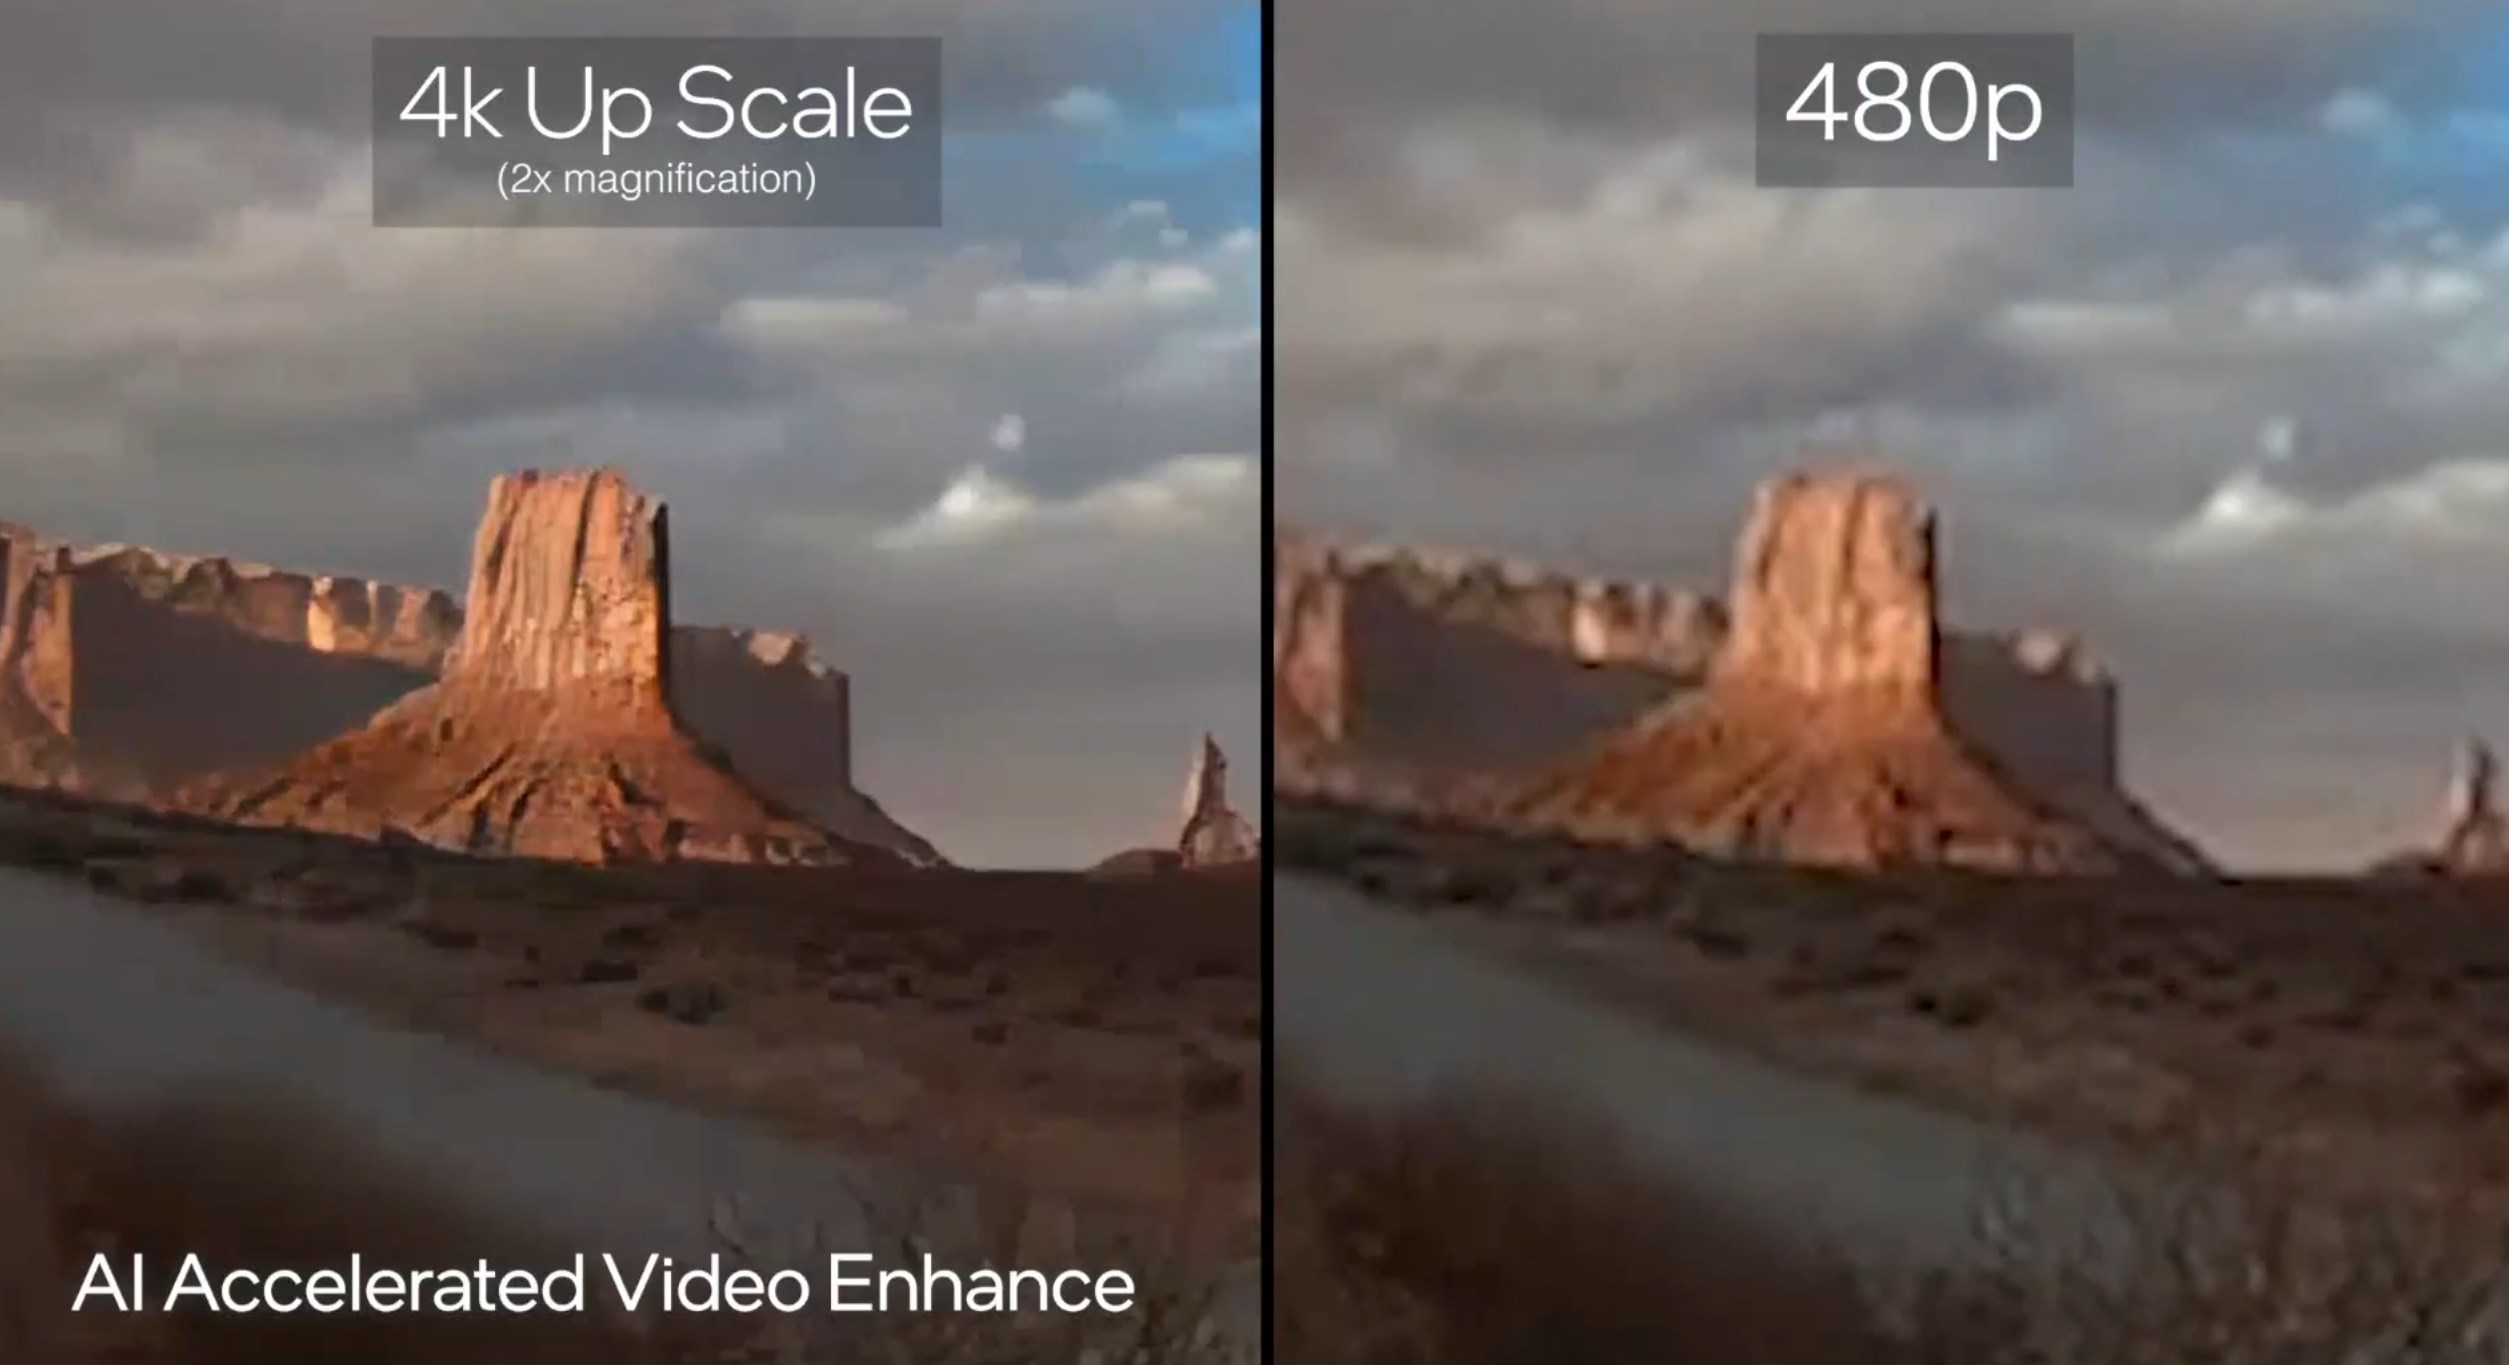 A demonstration of Intel Alchemist upscaling a 4K image from a 480p sample.